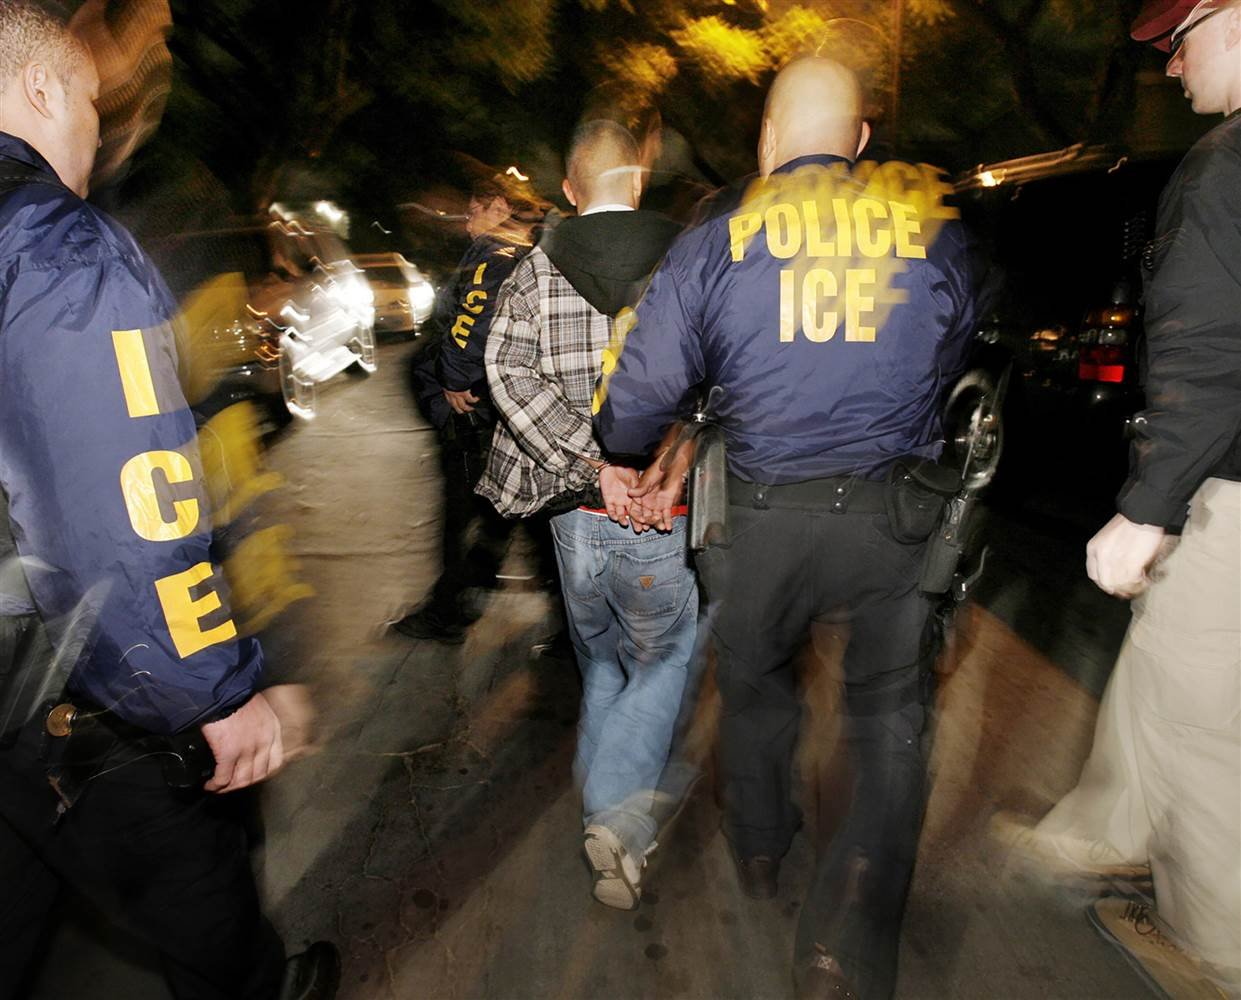 ICE halts raids due to hurricanes